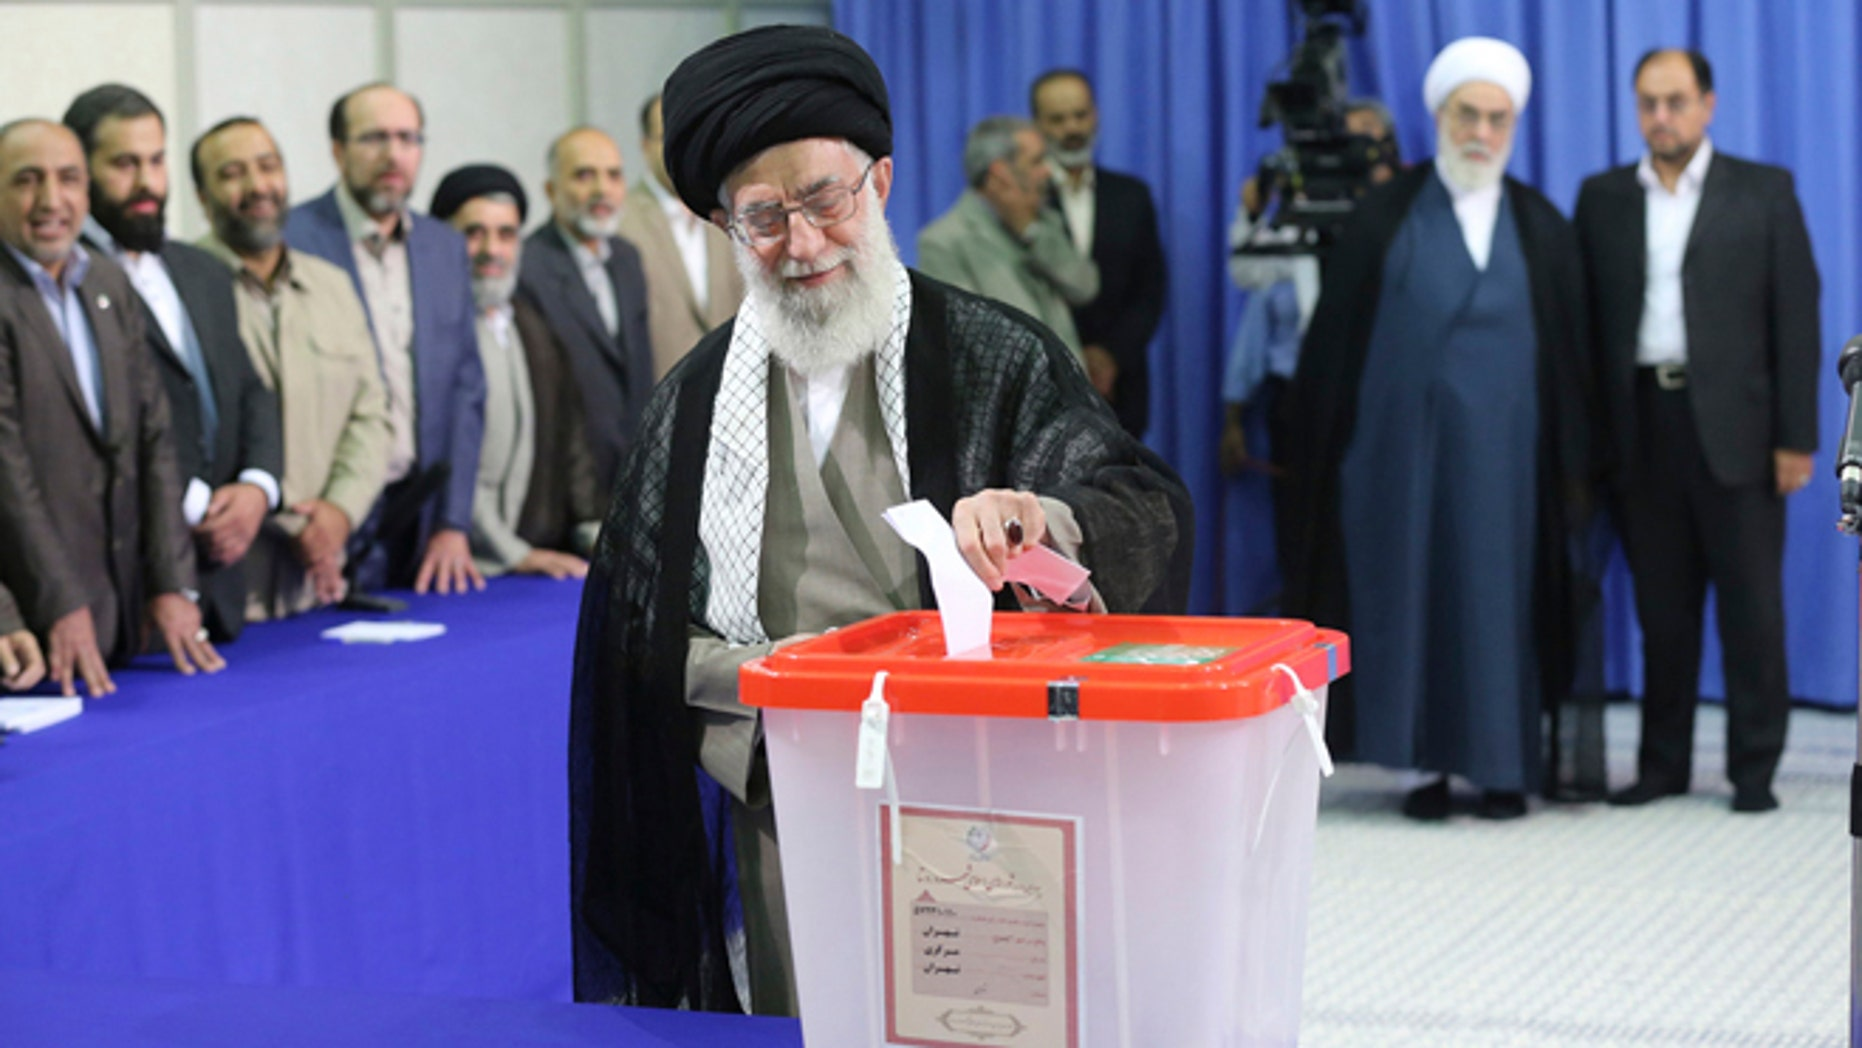 In this June 14, 2013 file photo, Iran's Supreme Leader Ayatollah Ali Khamenei casts his ballot at his office during the Iranian presidential election in central Tehran.